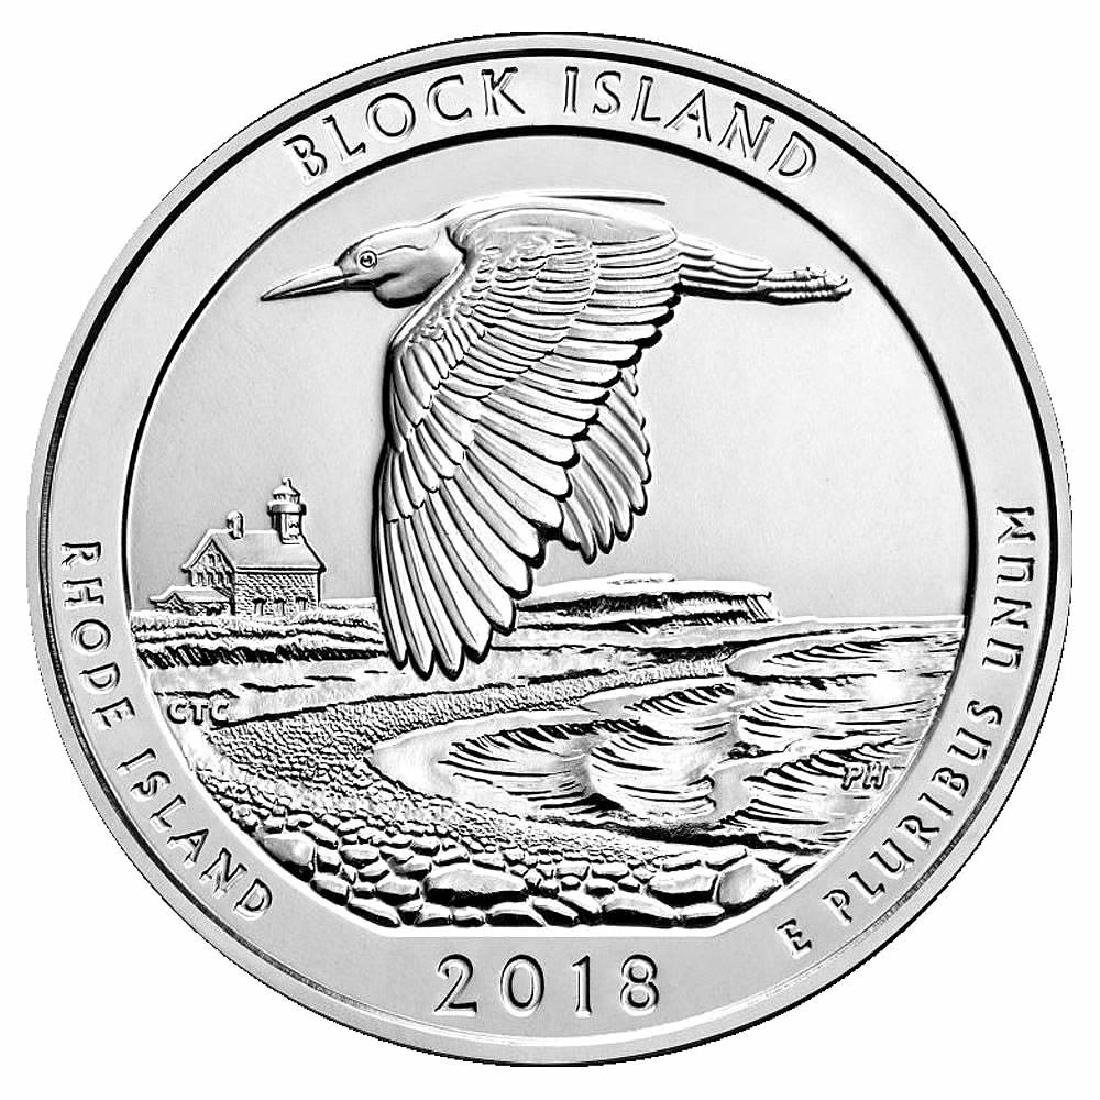 2018 Silver 5oz. Block Island National Wildlife Refuge